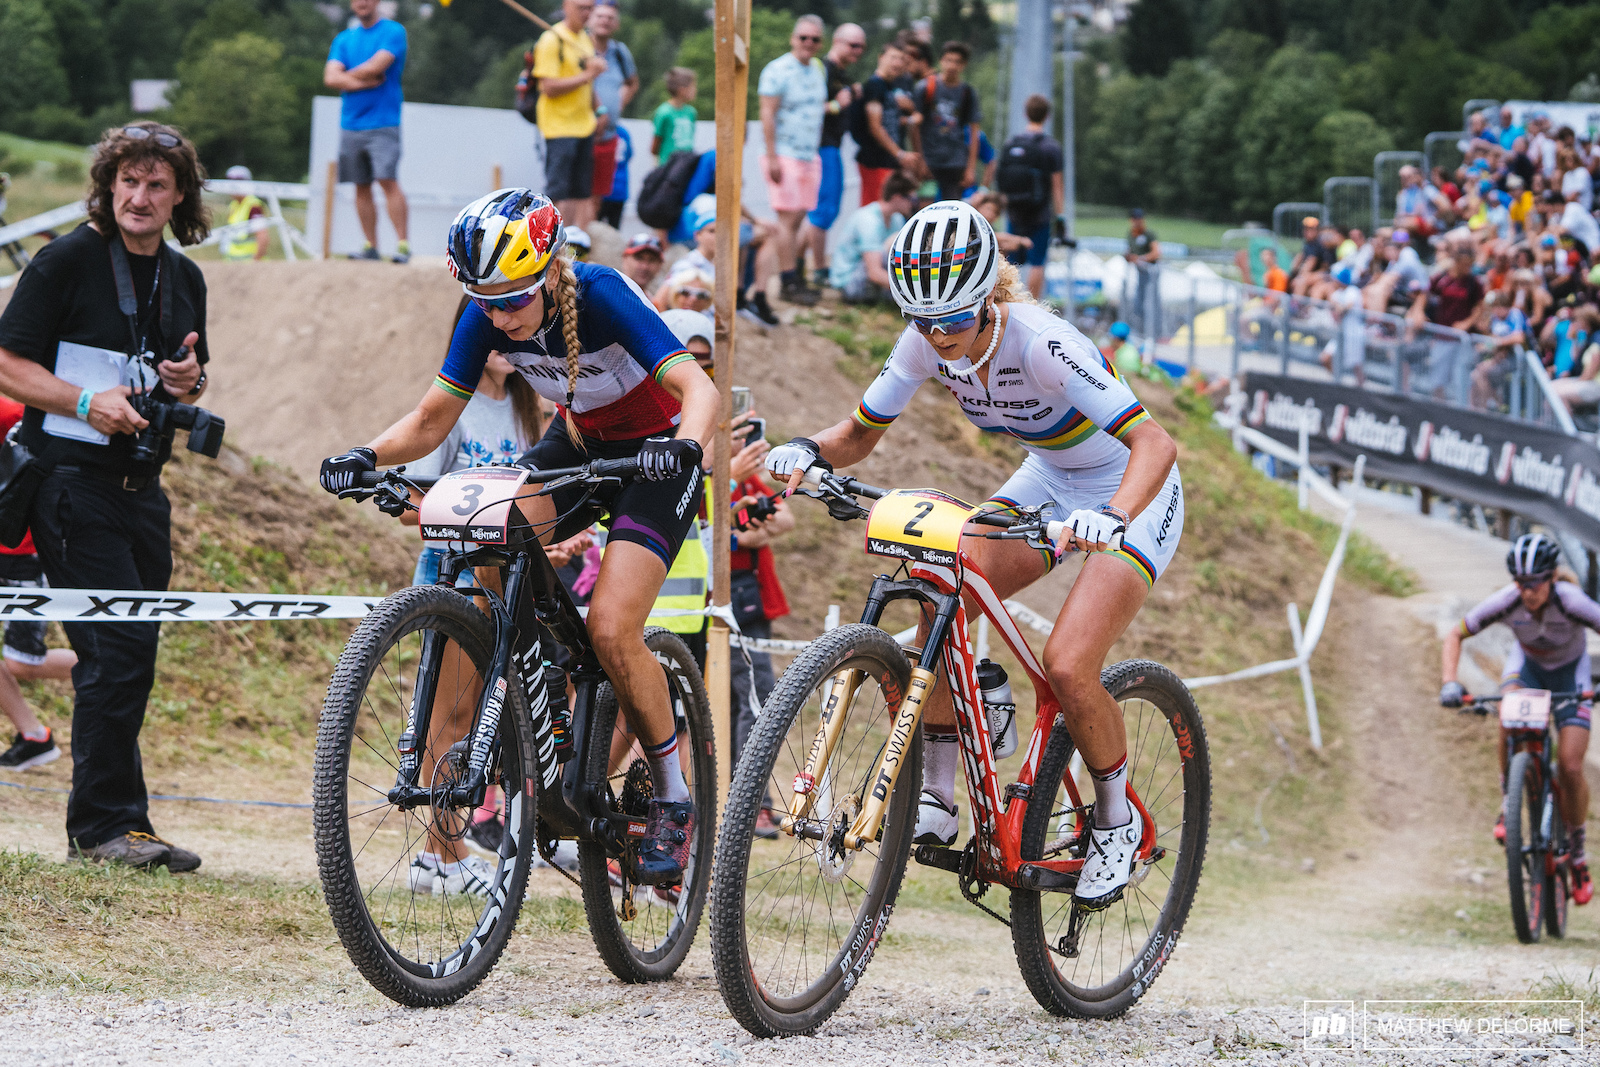 Neff and Prevot in one of many back and fourths.